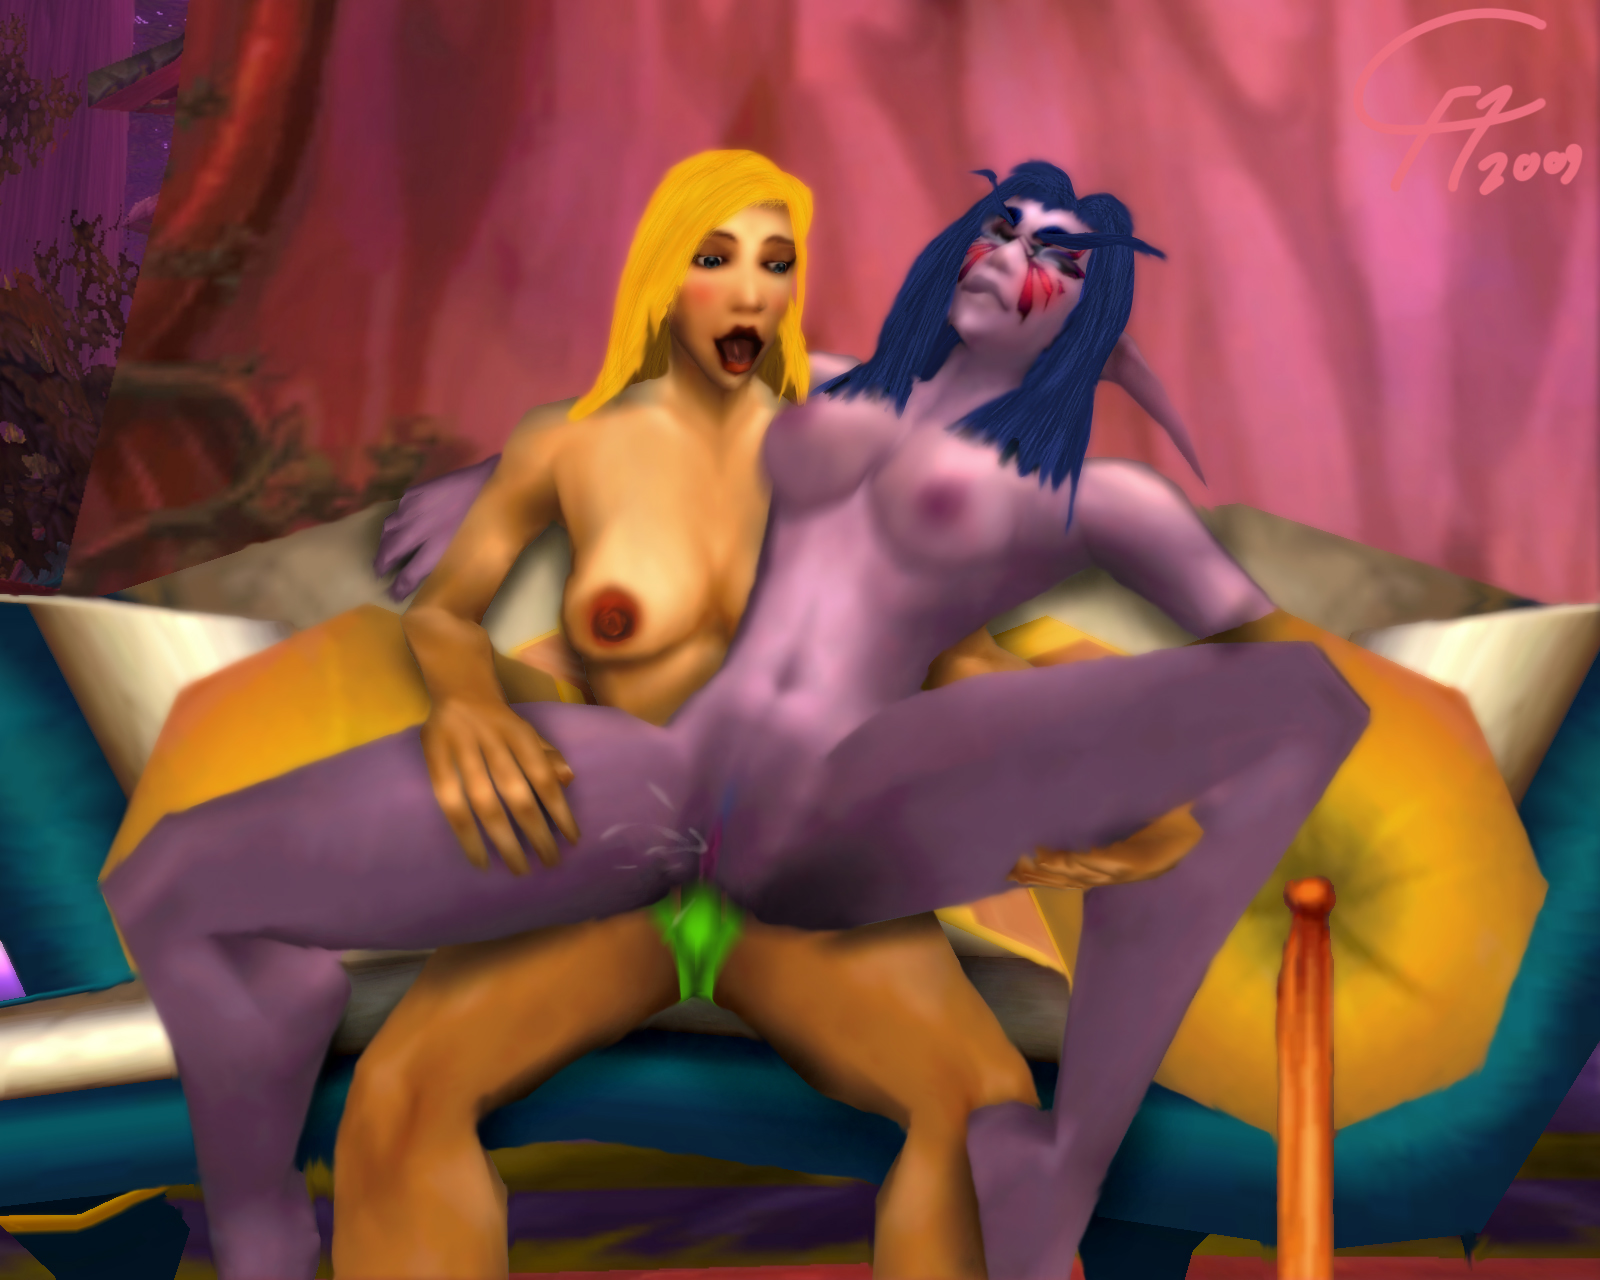 Wow human gets fucked by nelf hentai video